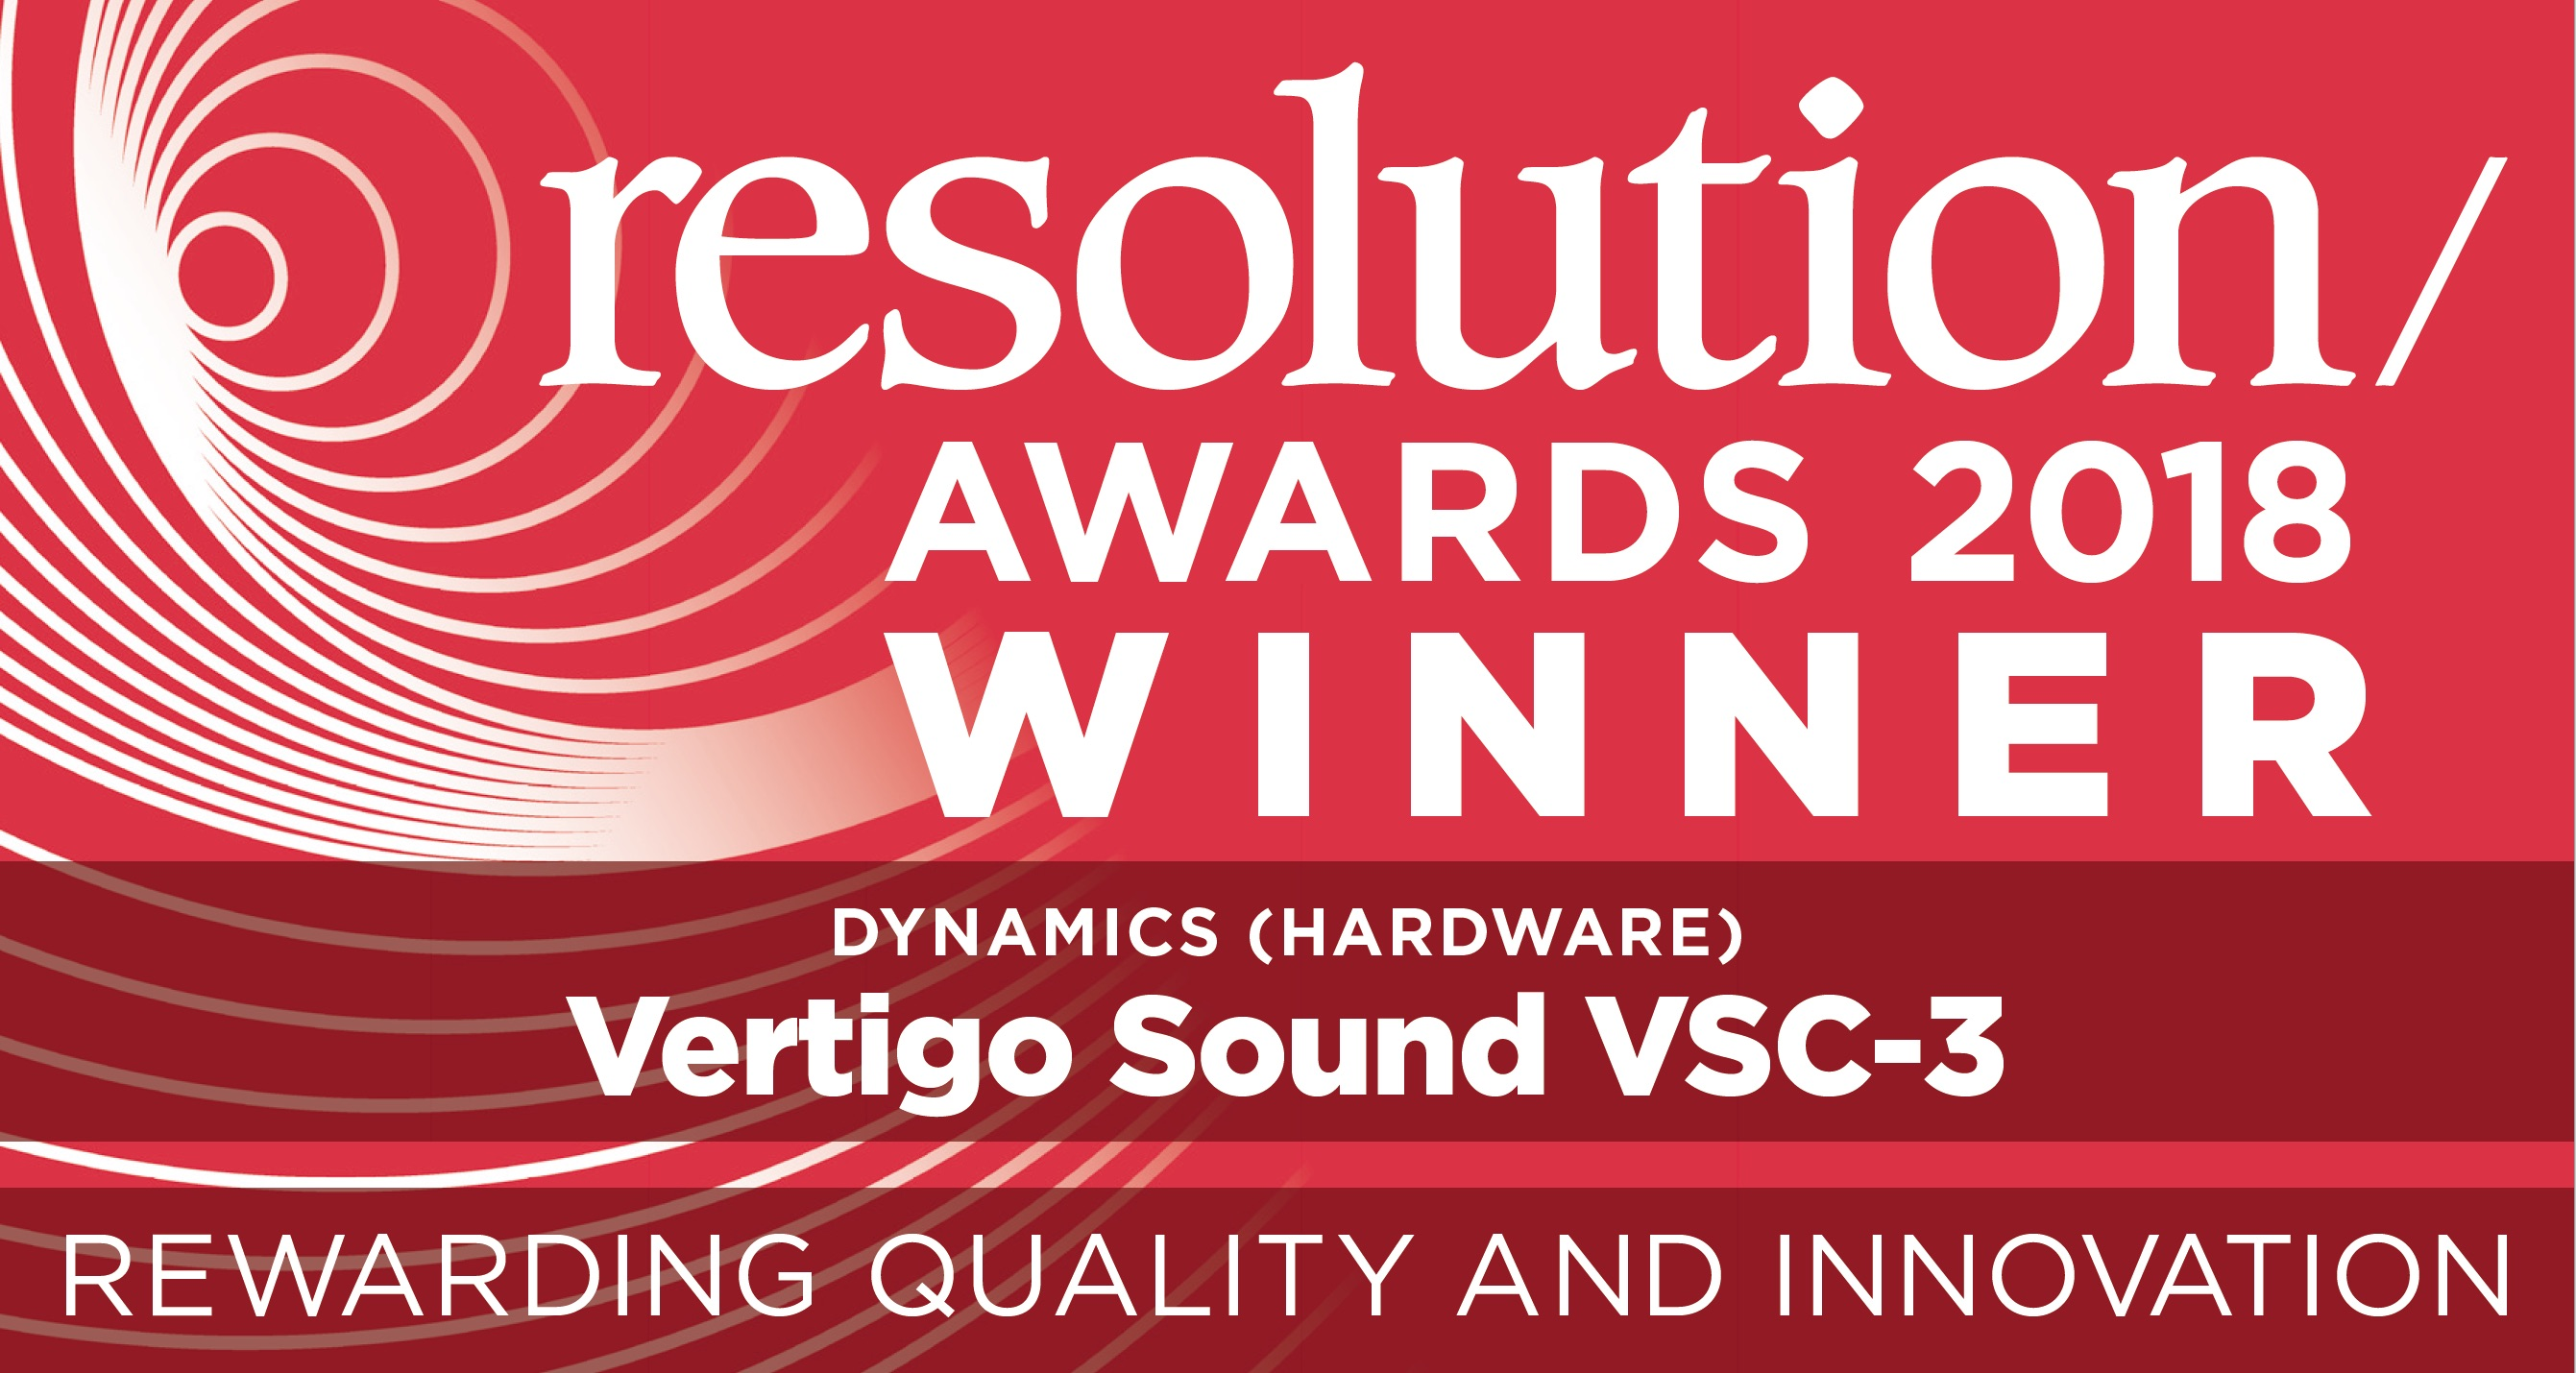 7c7fb46ab6b We are pleased to announce the VSC-3 has won the Resolution award 2018 for  Dynamics in the hardware category. We just want to say a huge thank you to  all of ...